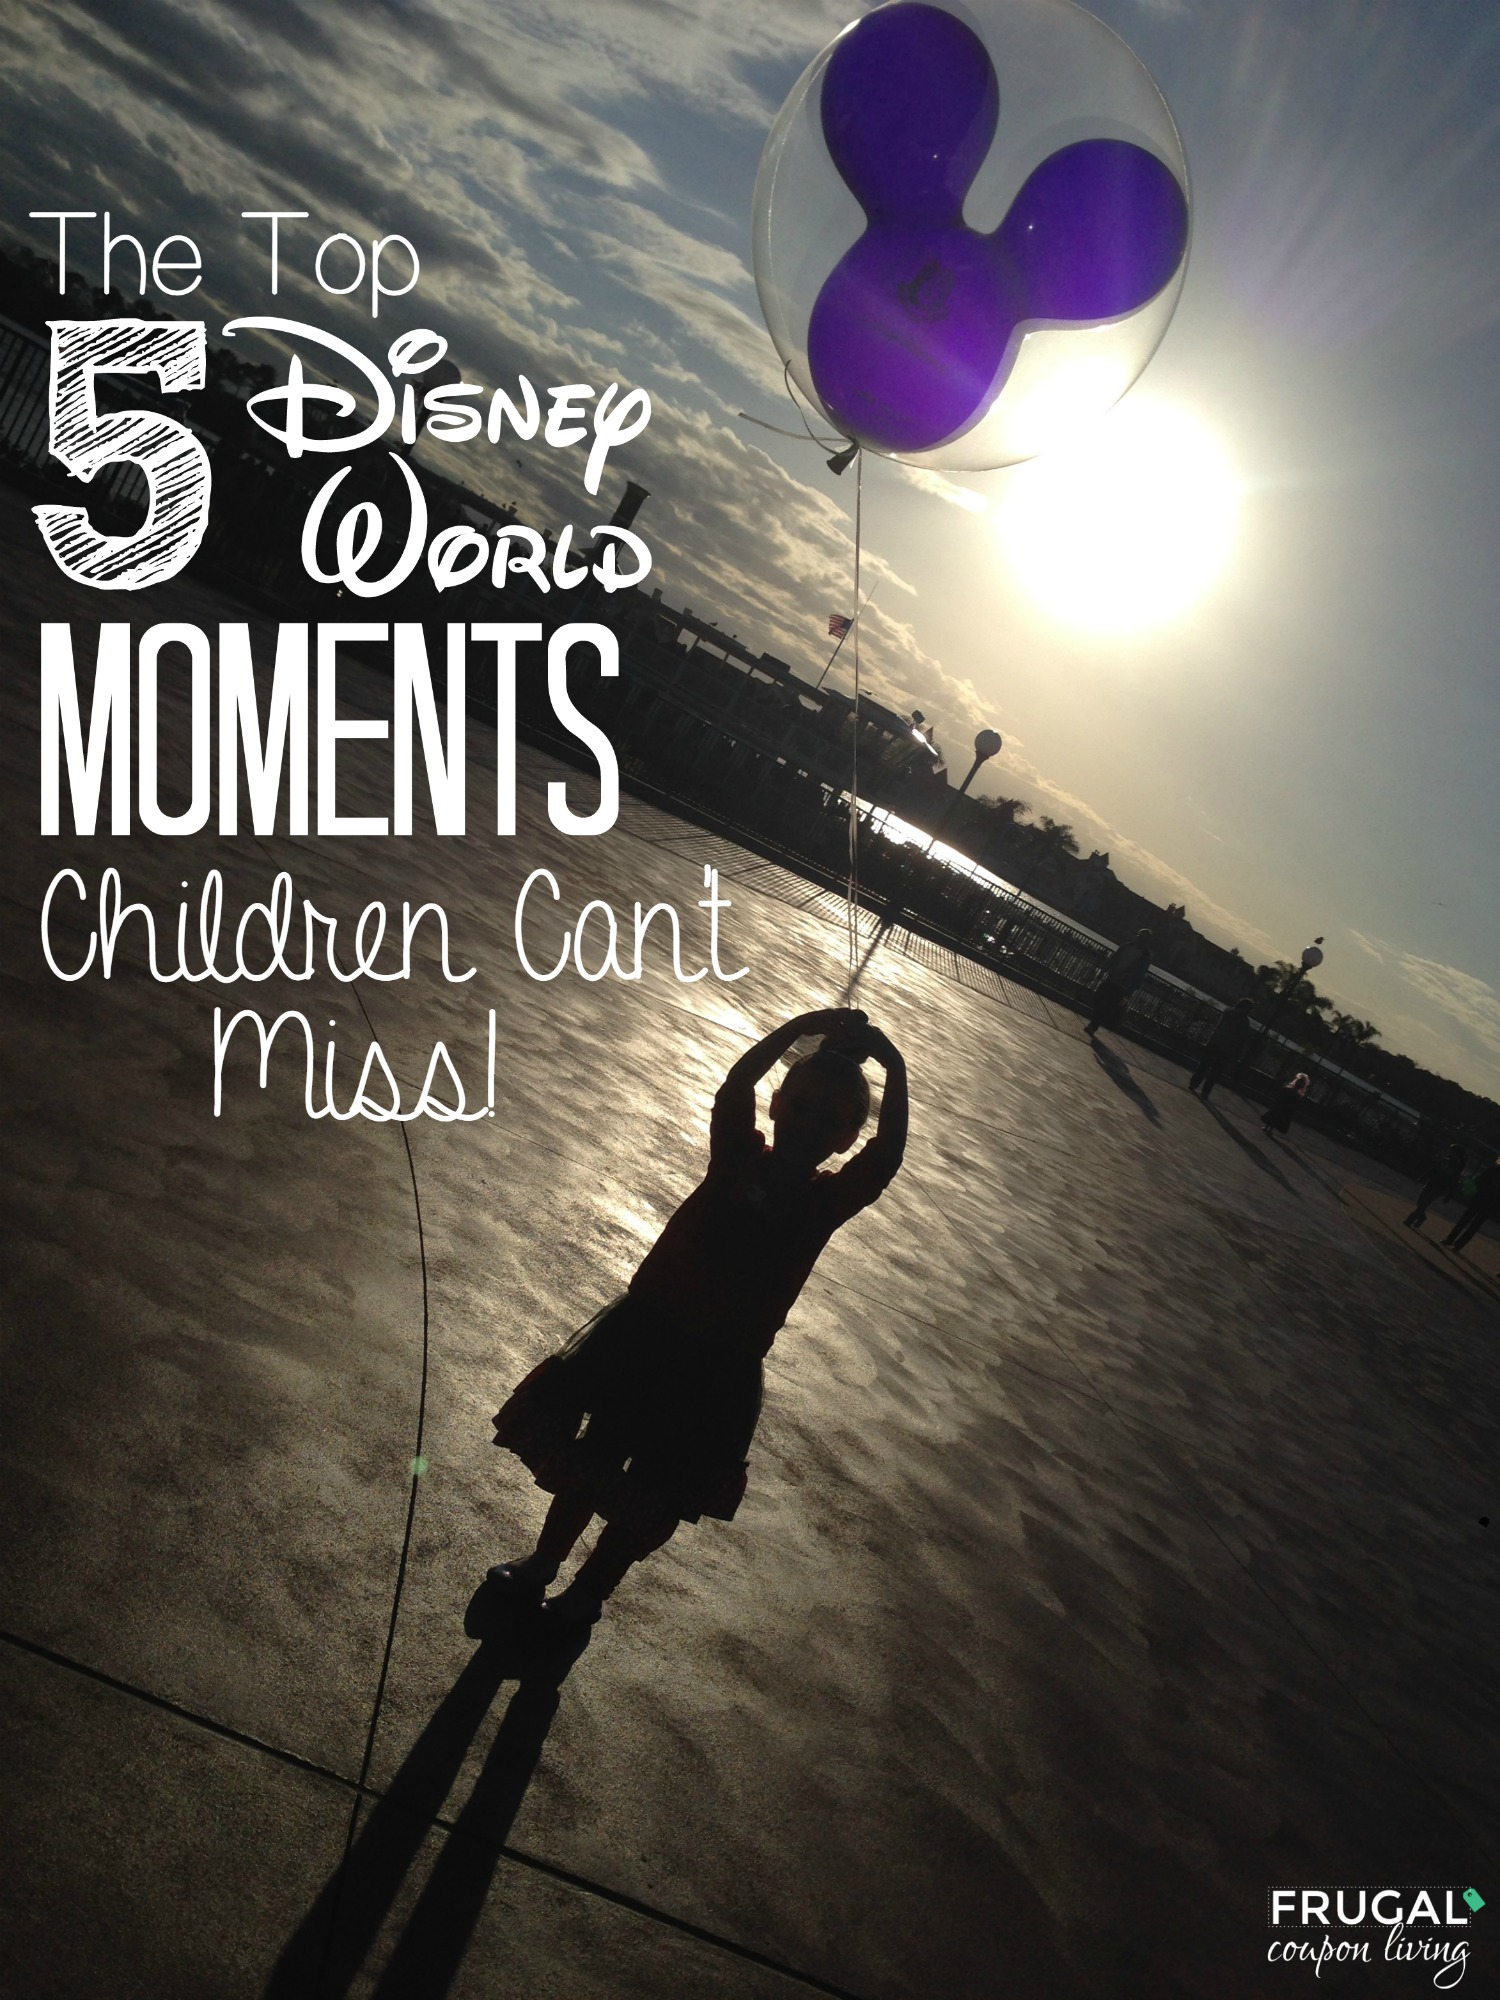 top-5-disney-world-moments-frugal-coupon-living